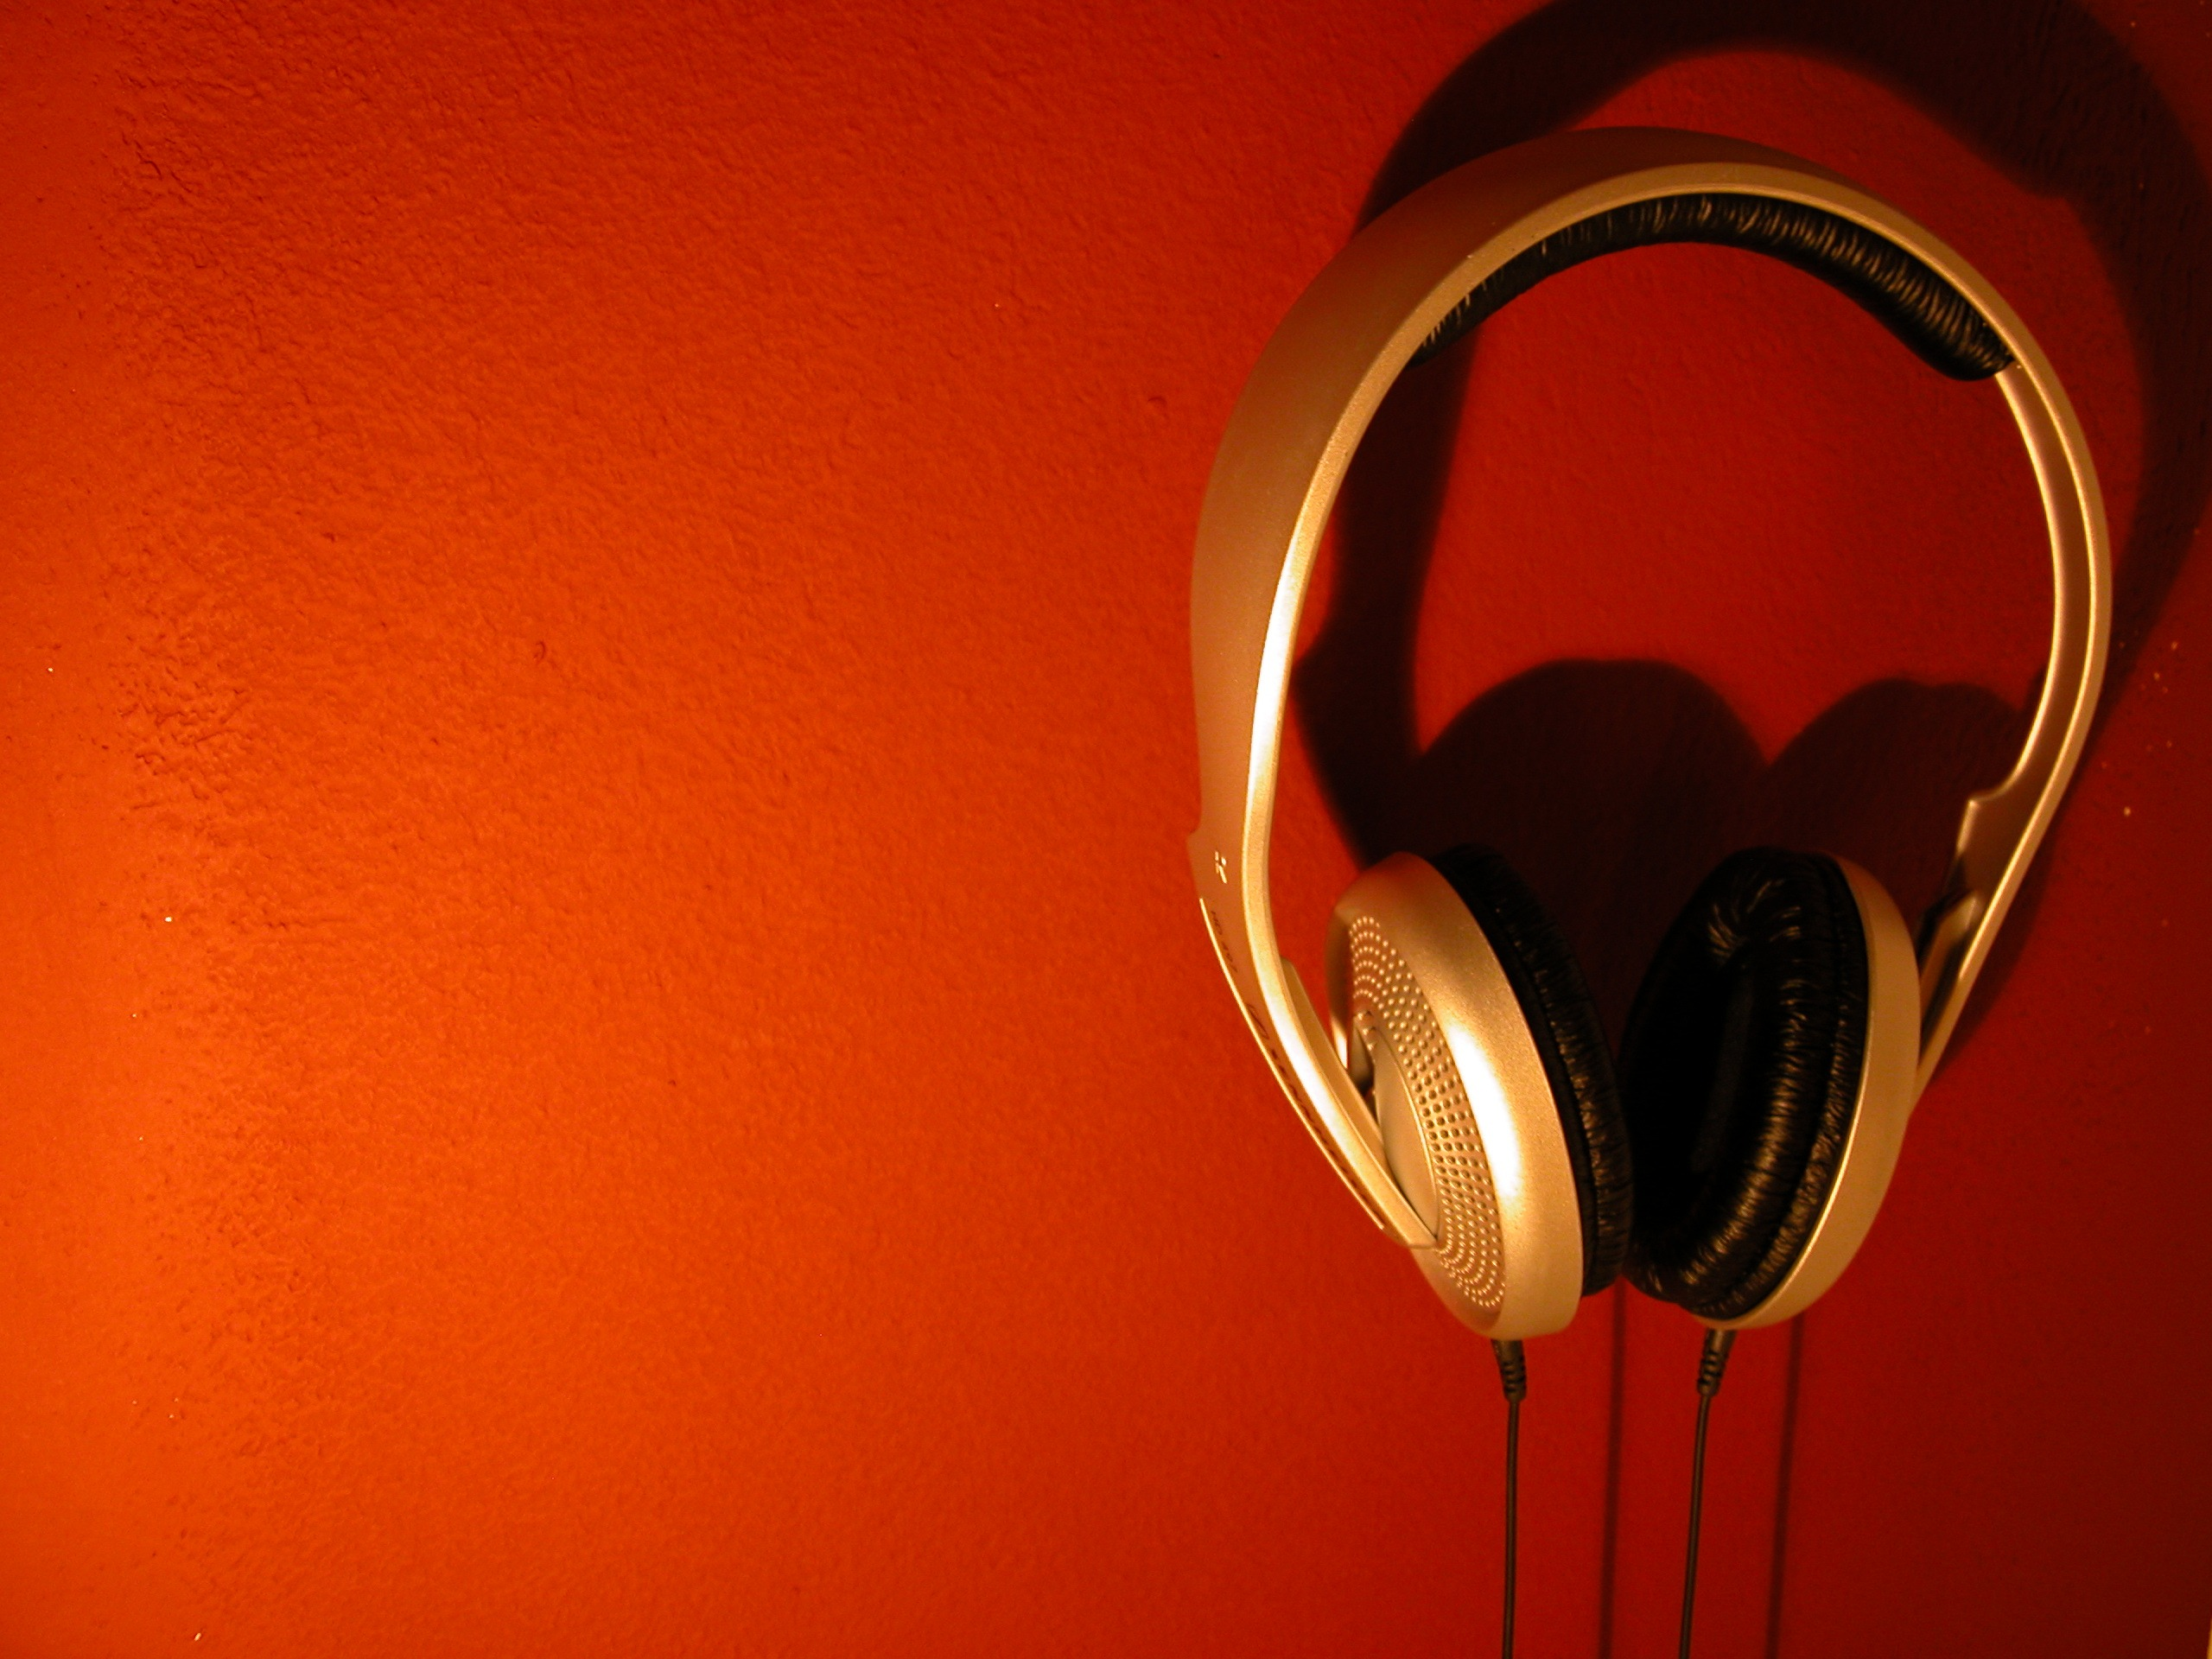 The streaming music industry by Joseph Ashford